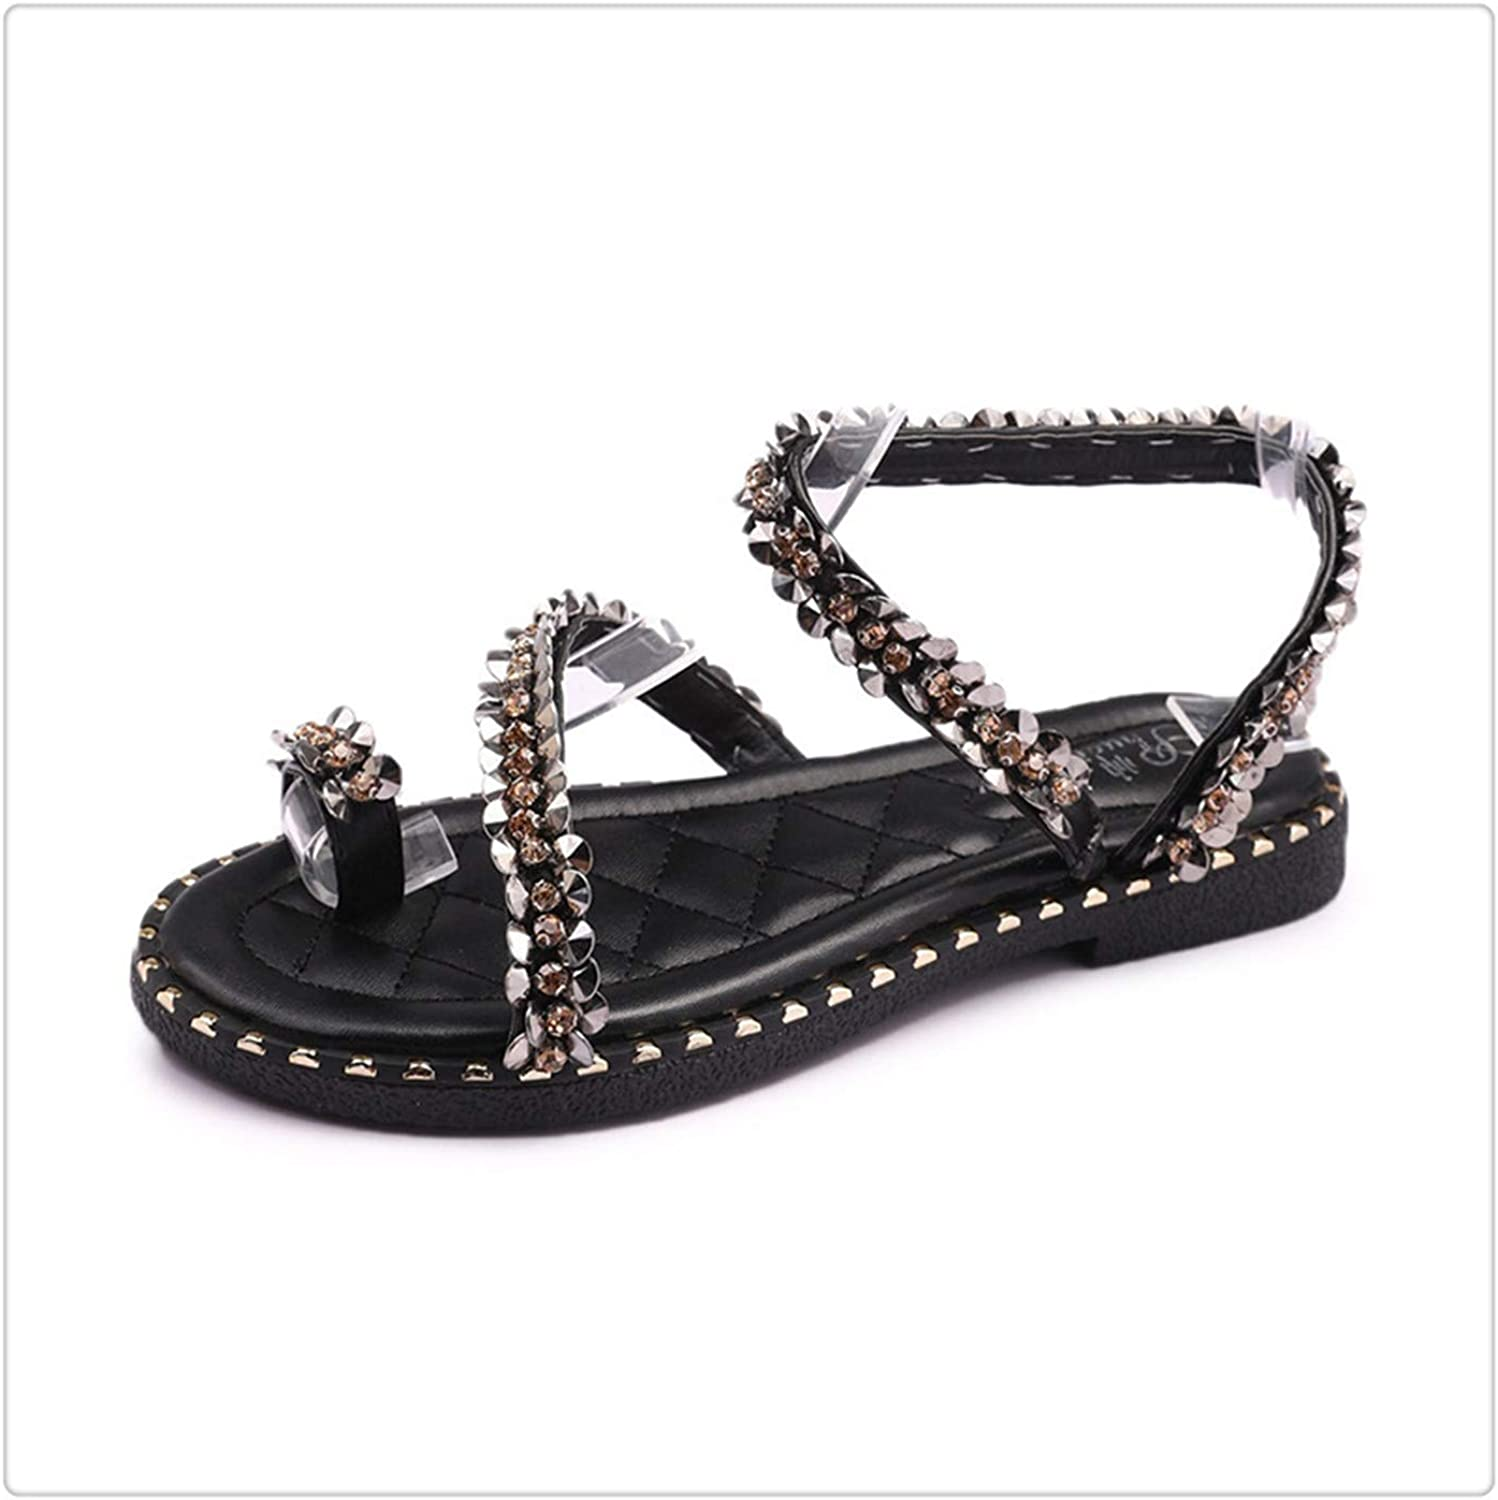 DOUSTY& Summer Slip-On Gladiator Sandals Women Front Rear Strap Rome Flat Crystal shoes